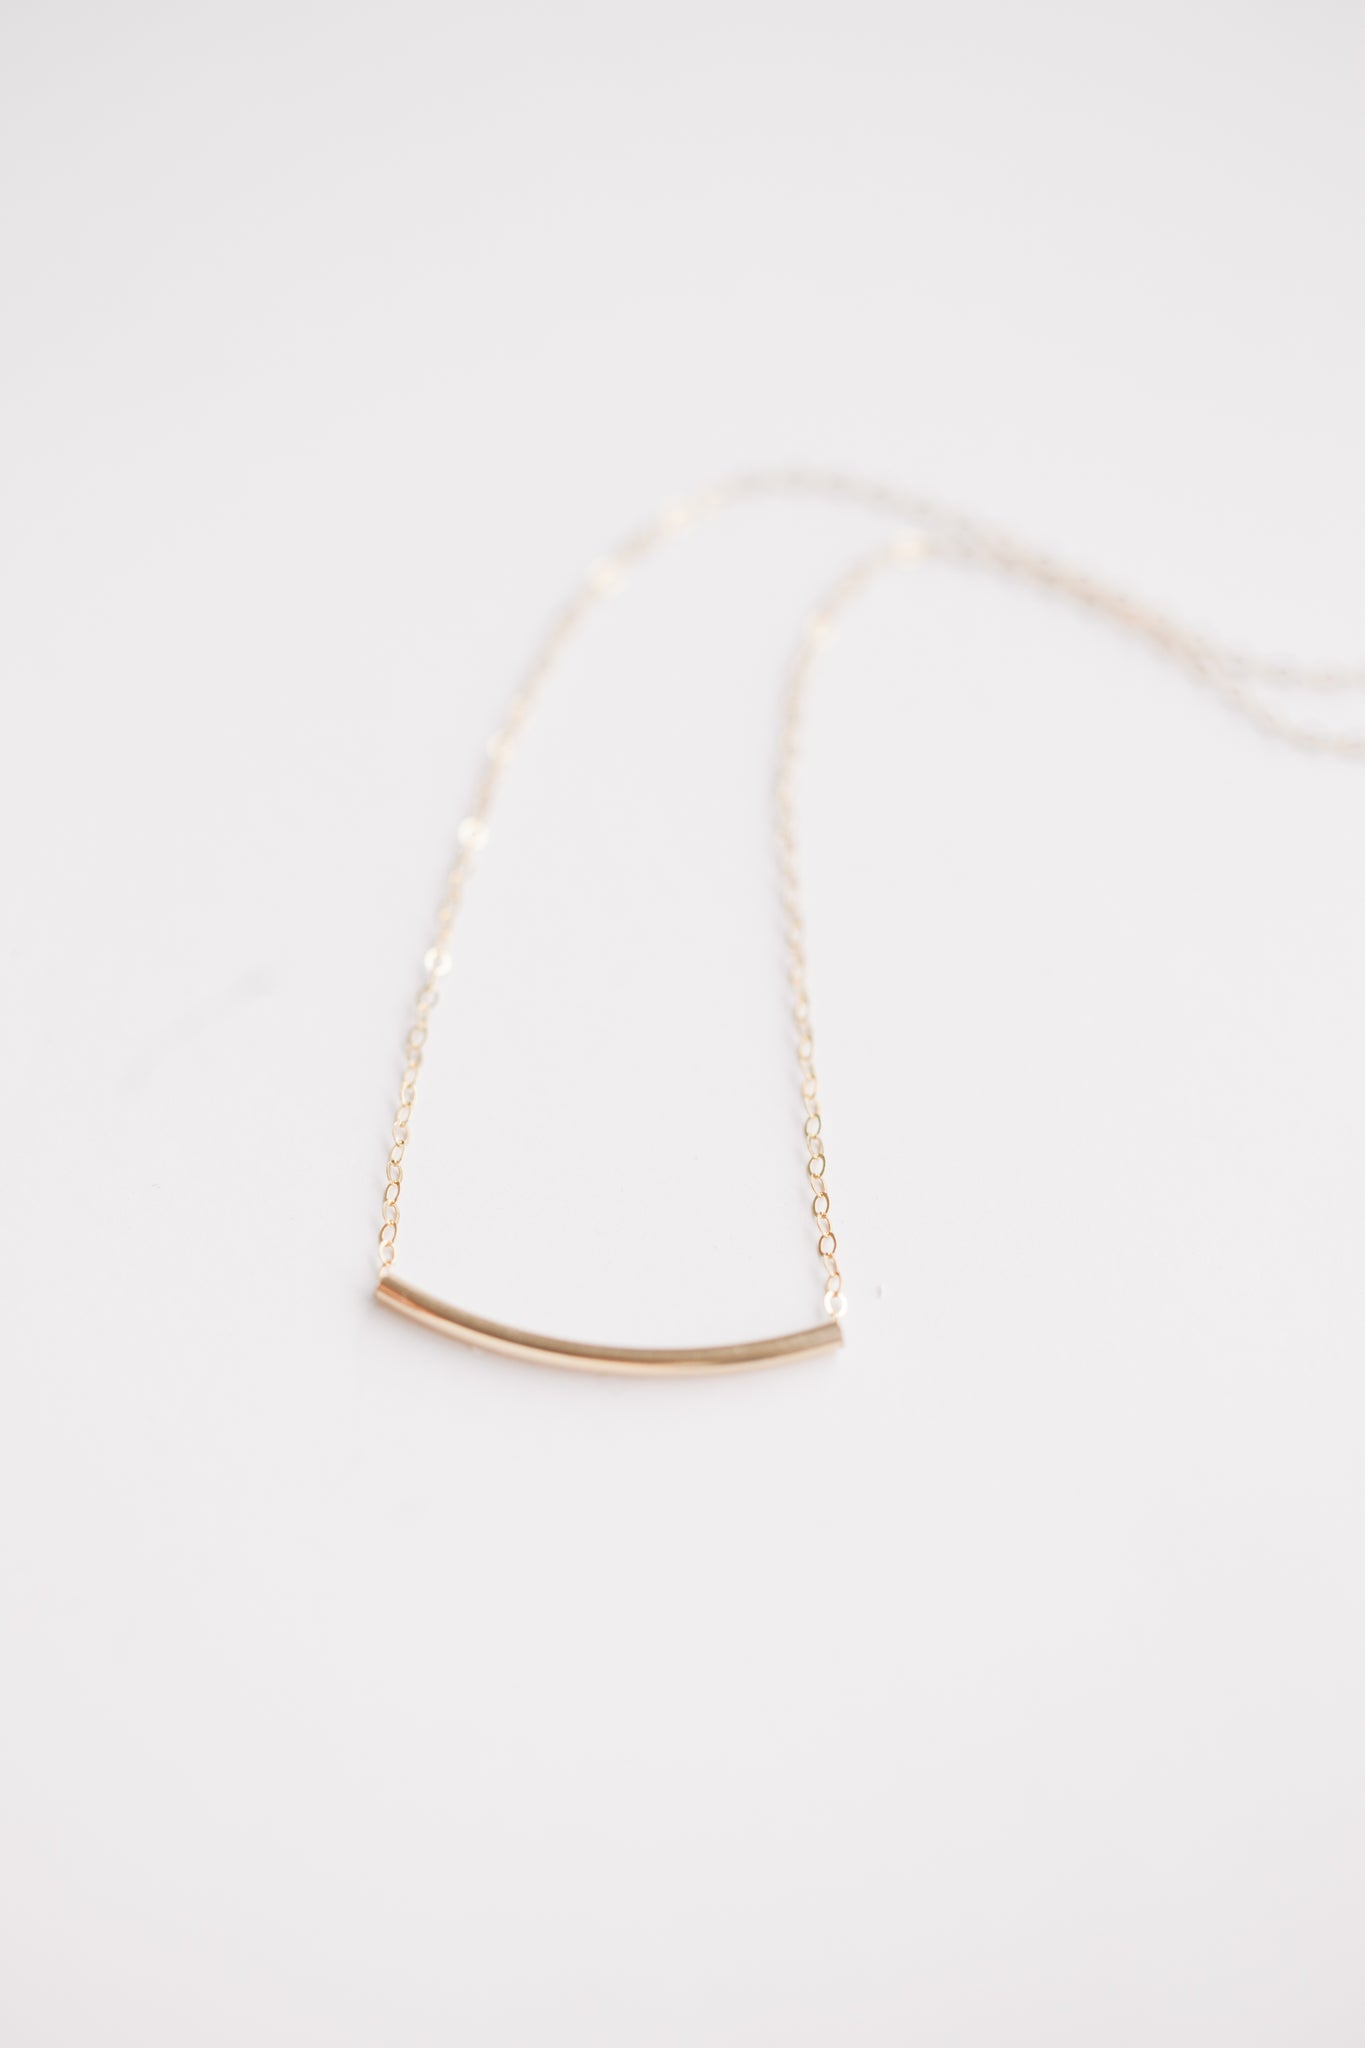 Noodle Necklace - 14k Gold Fill